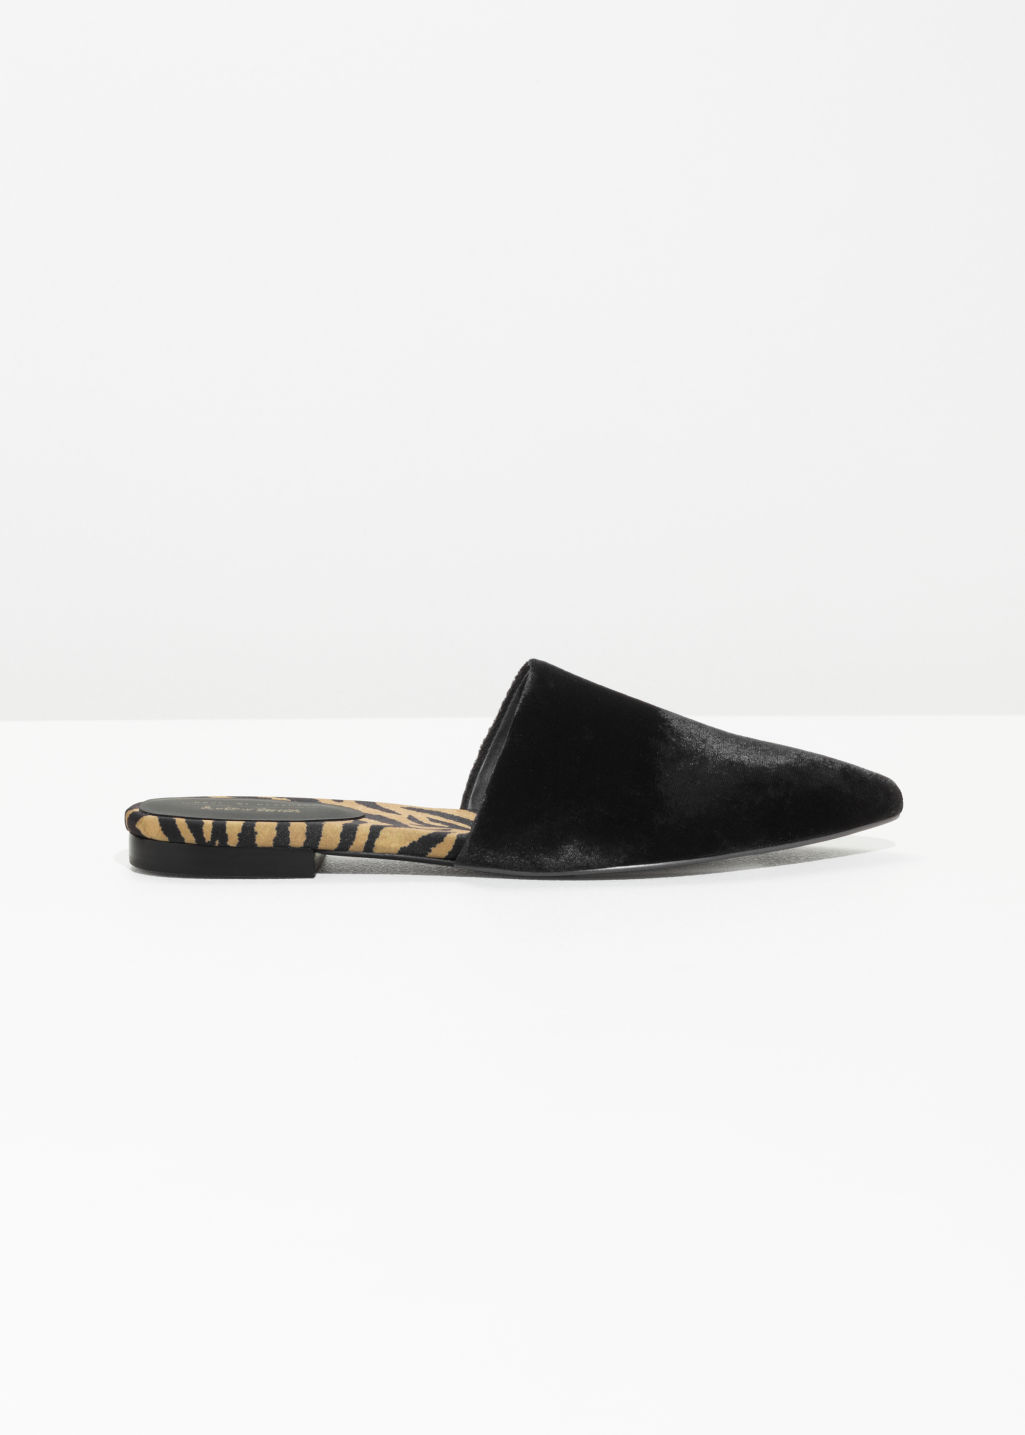 & OTHER STORIES House of Hackney Slip Ons rLraY